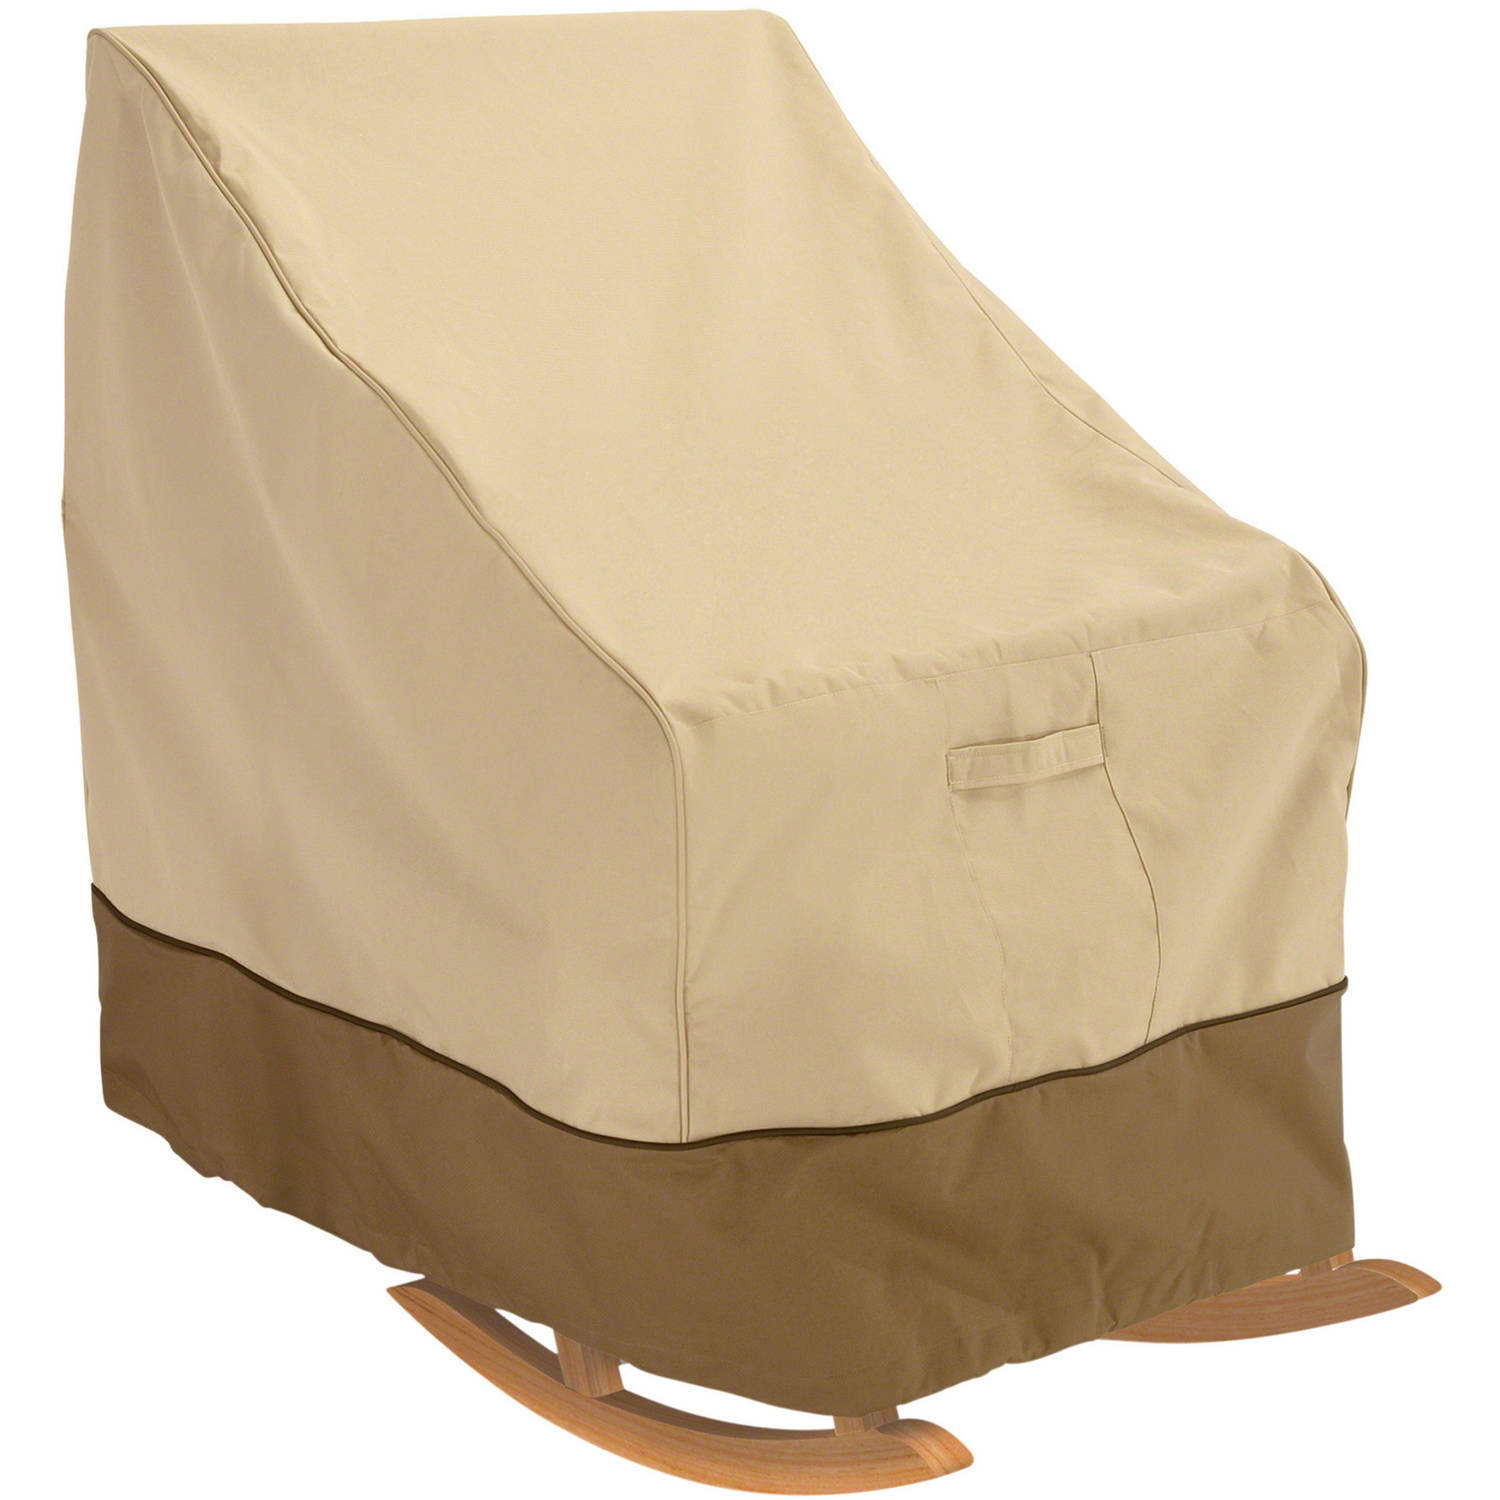 "Classic Accessories Veranda Patio Rocking Chair Storage Cover, Fits Chairs 27.5""L x 32.5""D"